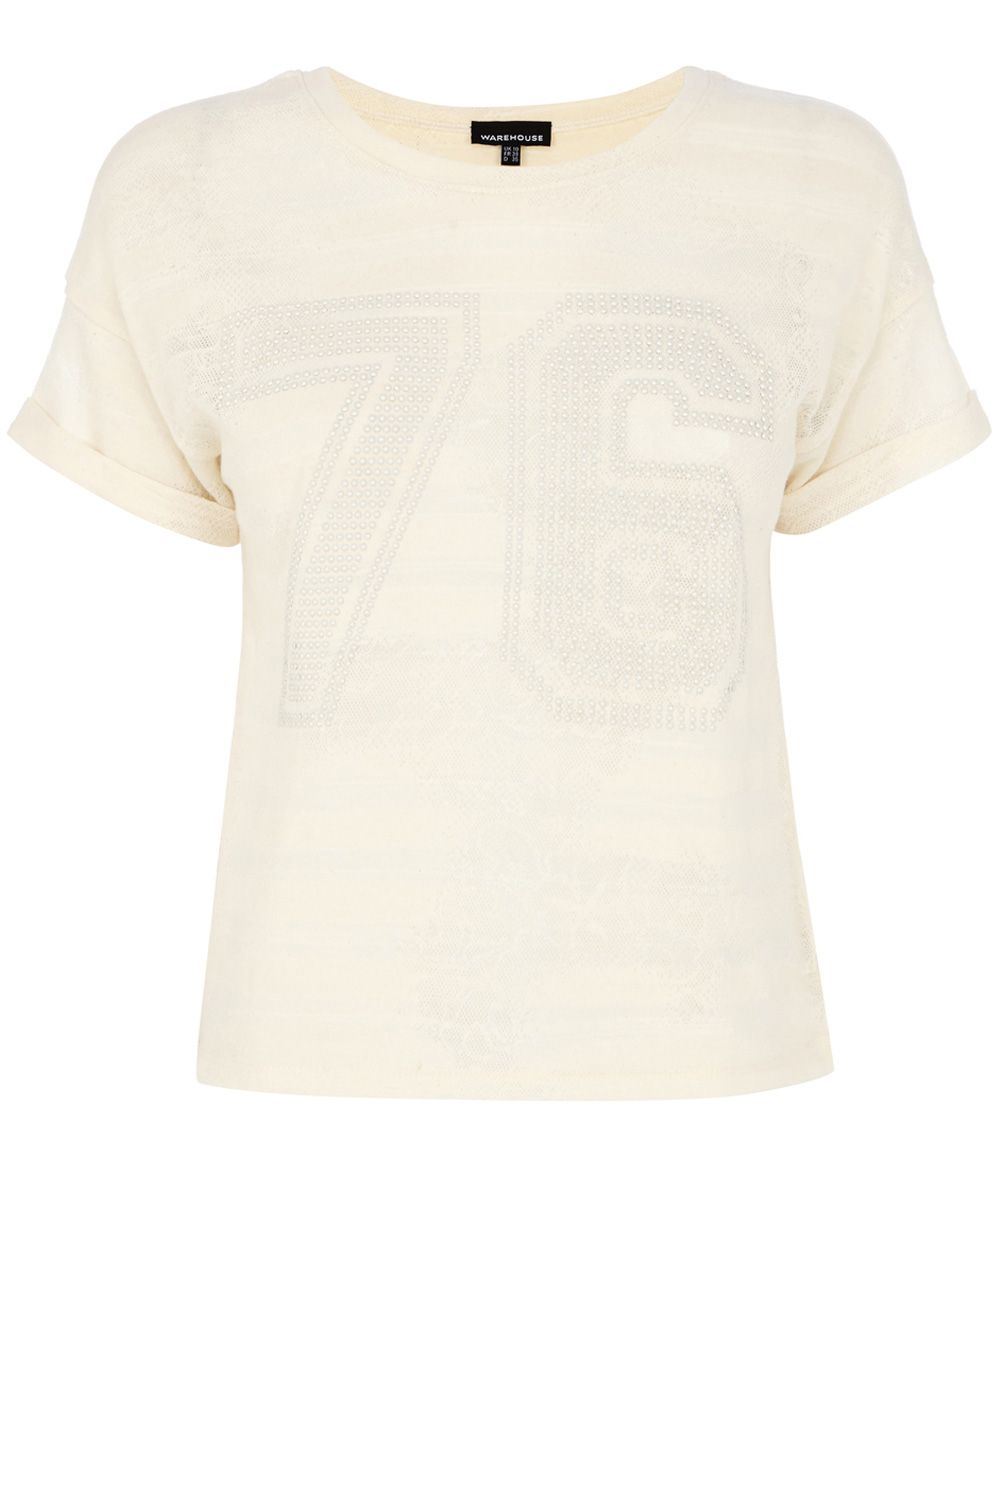 Stud number lace t-shirt